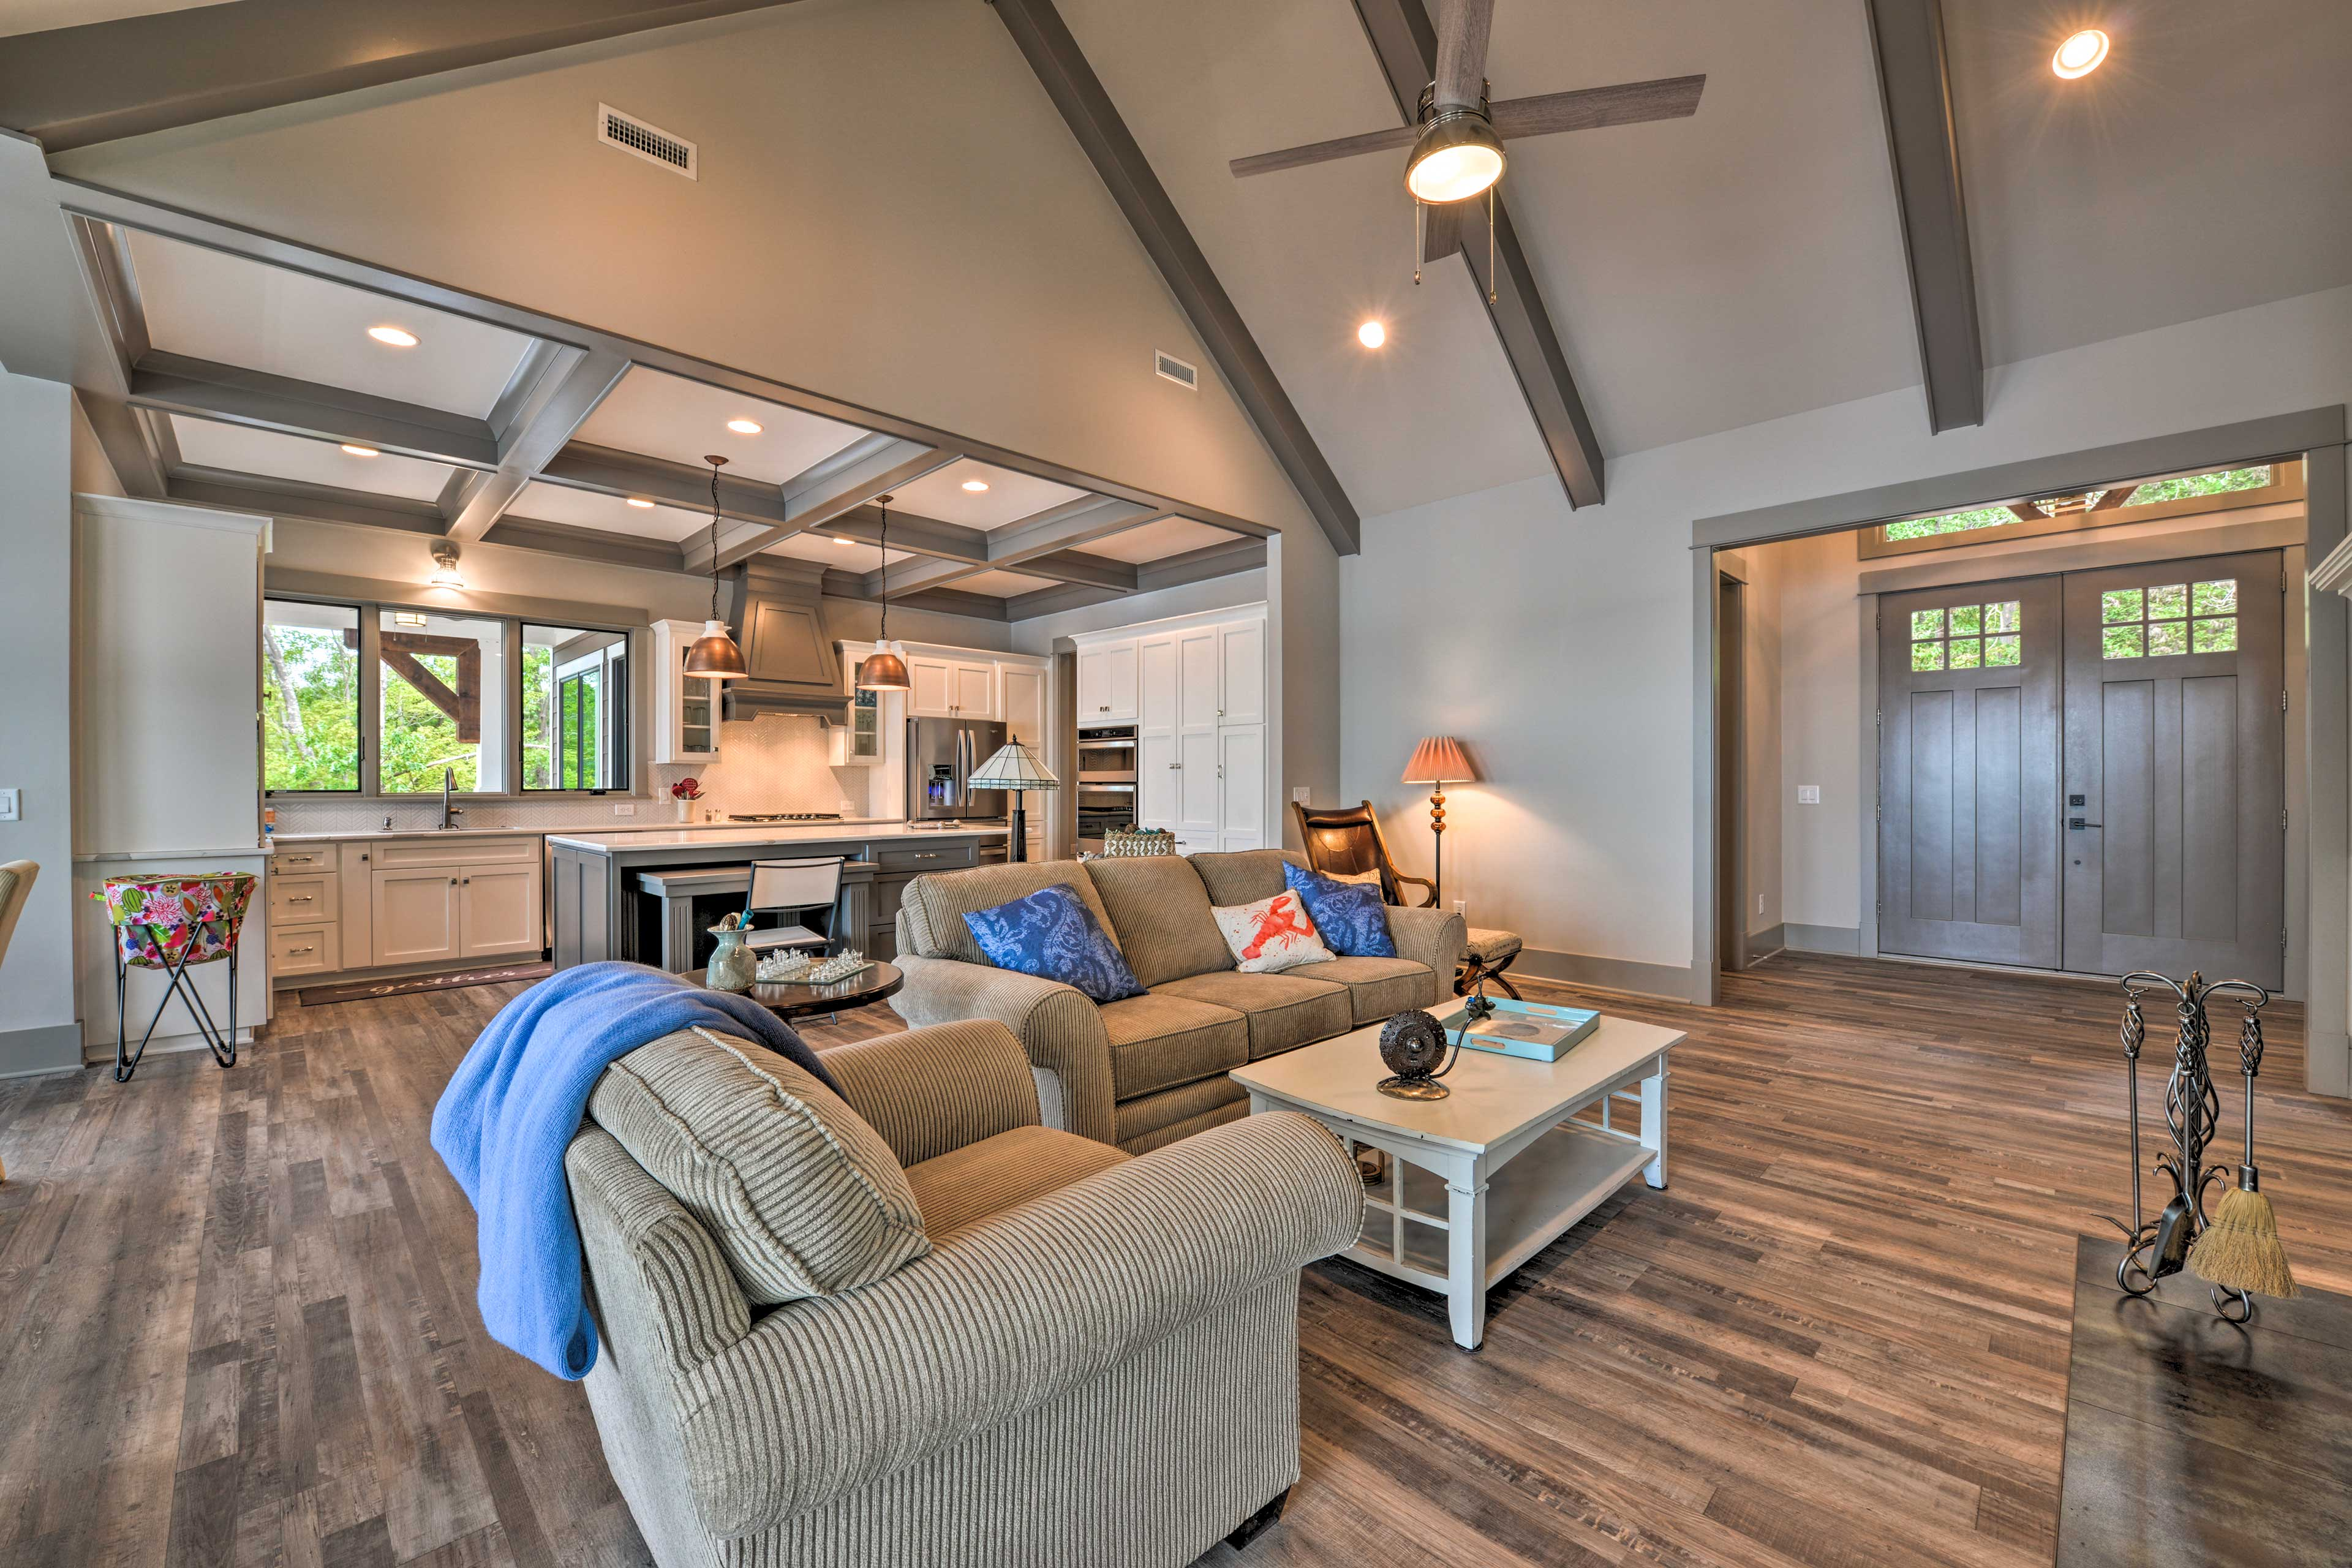 The open floor plan makes it easy to spend time together.